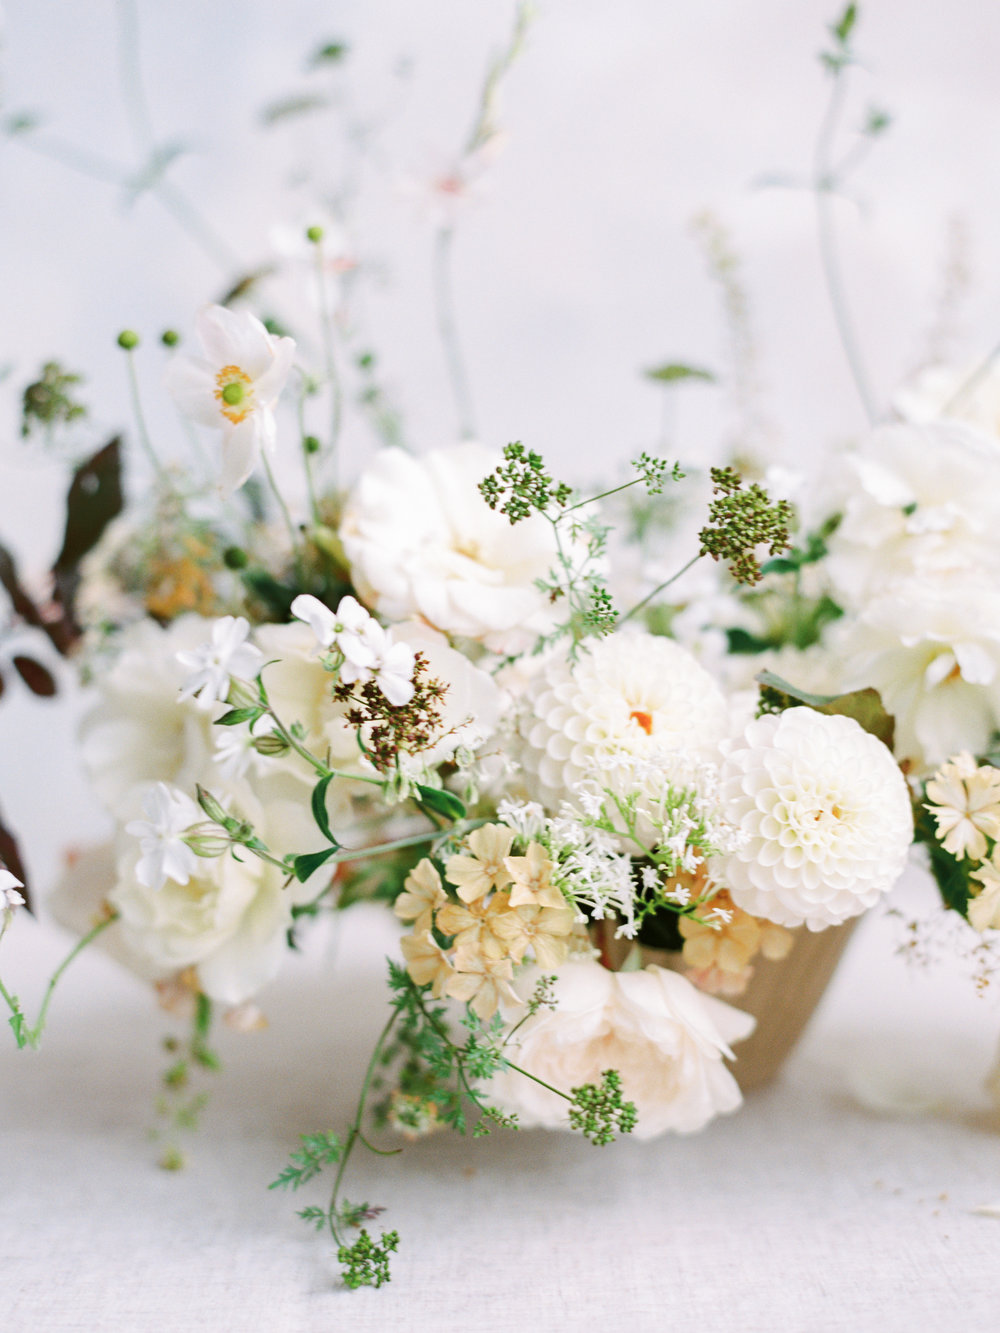 Florals - Moss & Stone Floral Design for The Fine Art Wedding Boutique | Image - Hannah Duffy